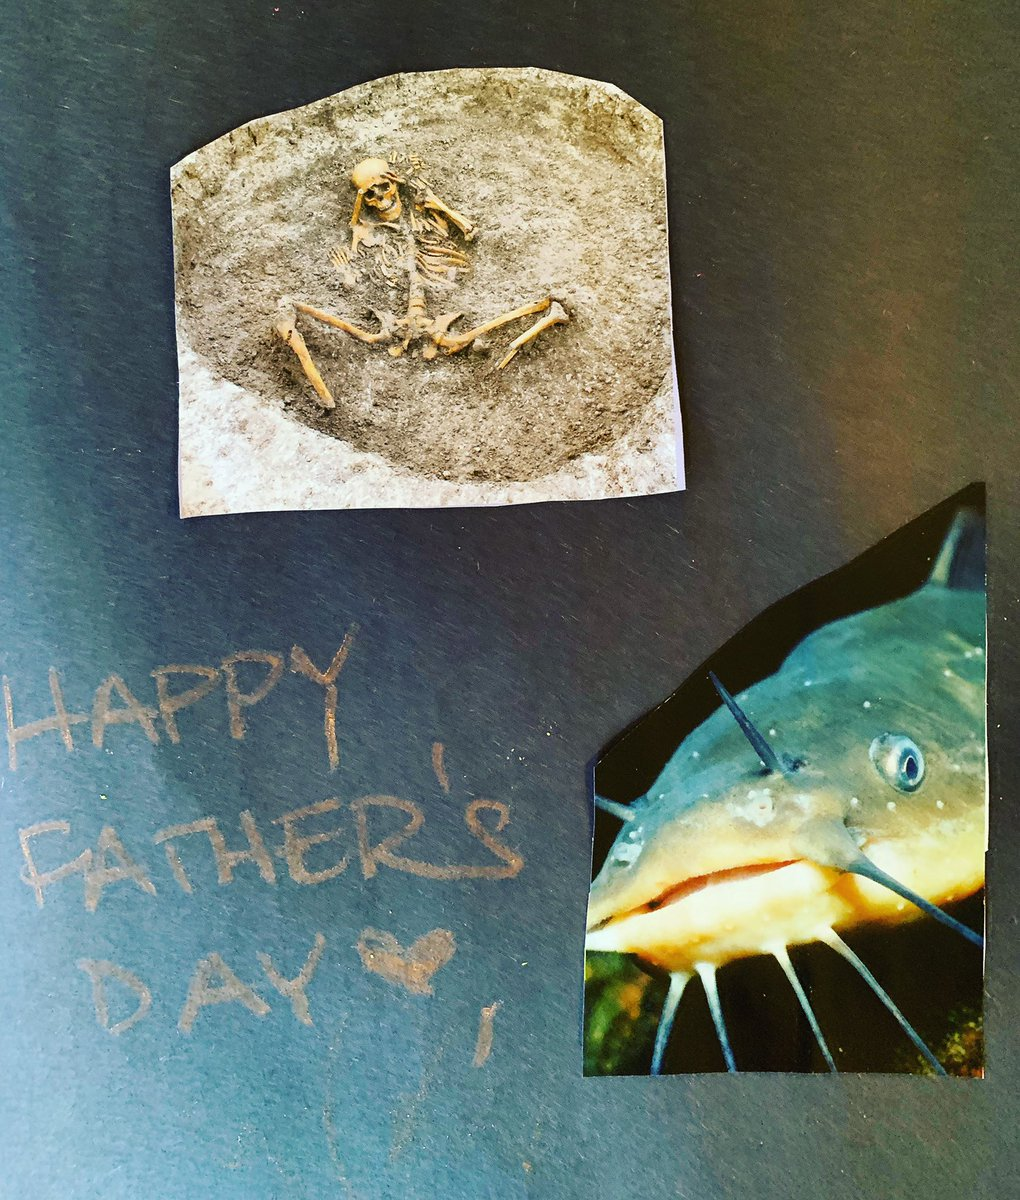 Calliope Hand picked these pictures out of a magazine for this card and would not be dissuaded. Happy Fathers Day! ???? https://t.co/fu1LRBLxUG